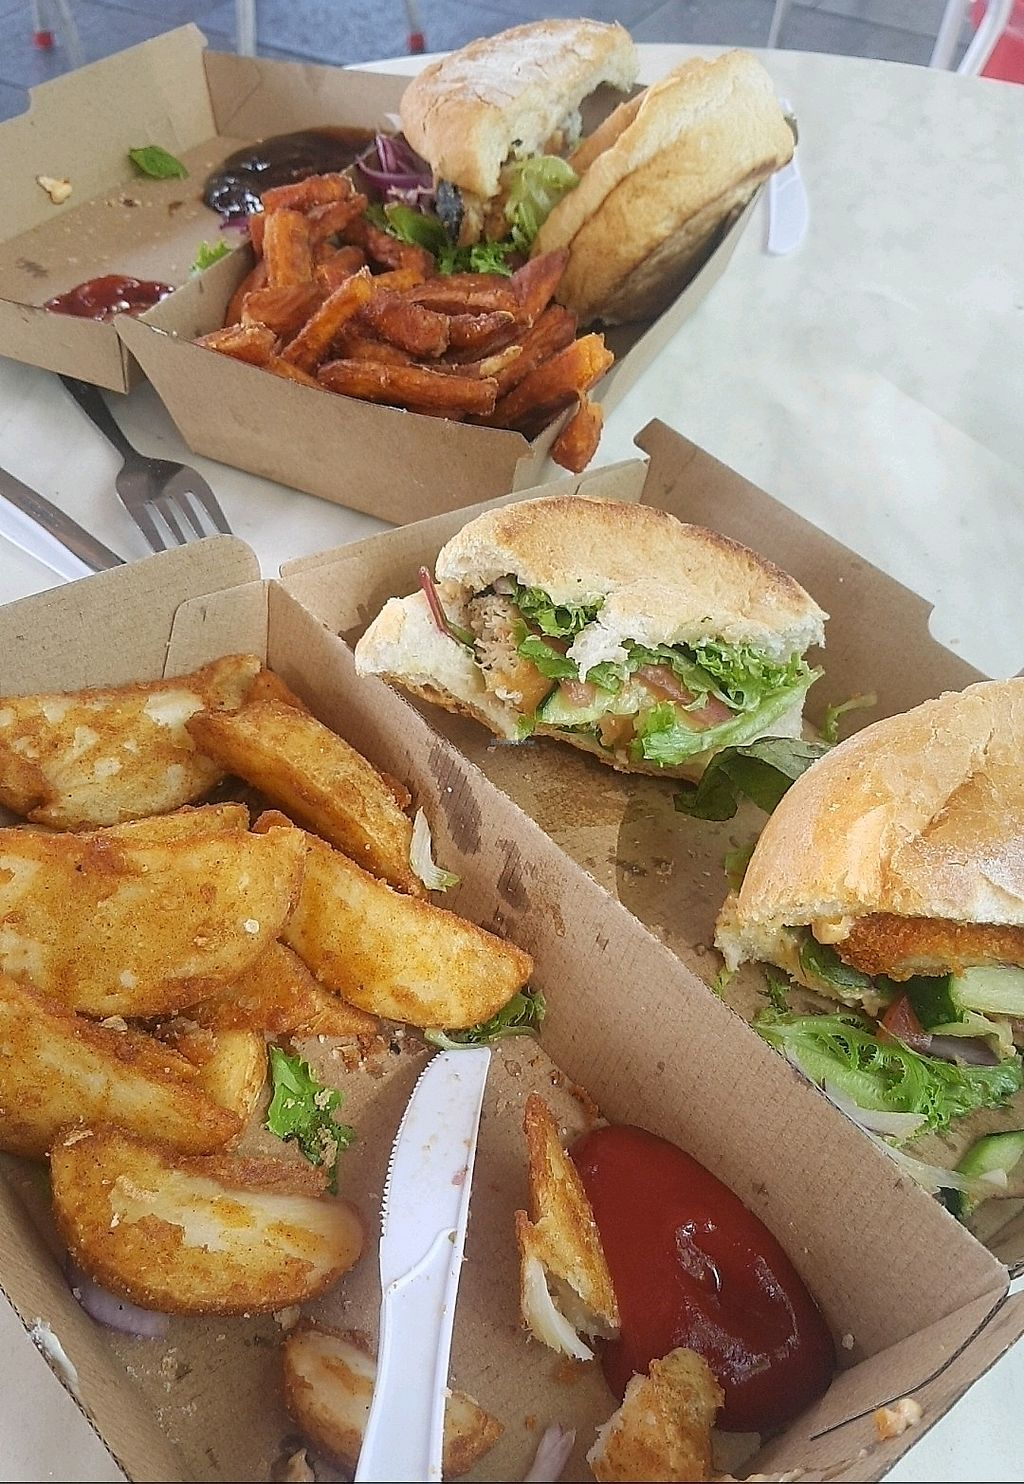 """Photo of The Fish Shack  by <a href=""""/members/profile/JessicaBrown"""">JessicaBrown</a> <br/>burgers and chips <br/> December 18, 2017  - <a href='/contact/abuse/image/86550/336776'>Report</a>"""